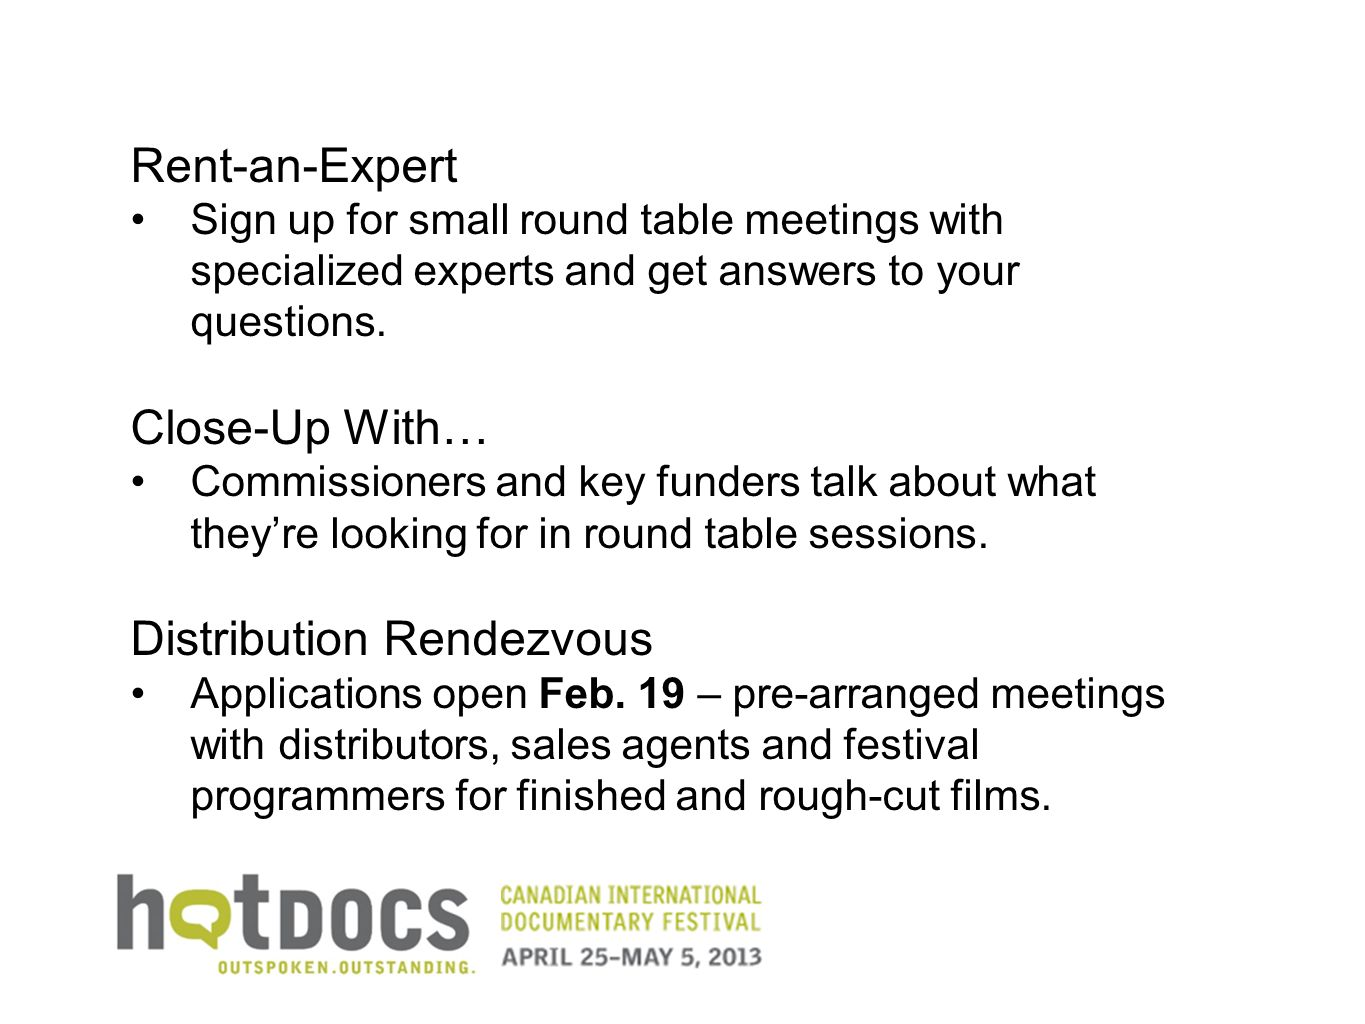 Rent-an-Expert Sign up for small round table meetings with specialized experts and get answers to your questions. Close-Up With… Commissioners and key